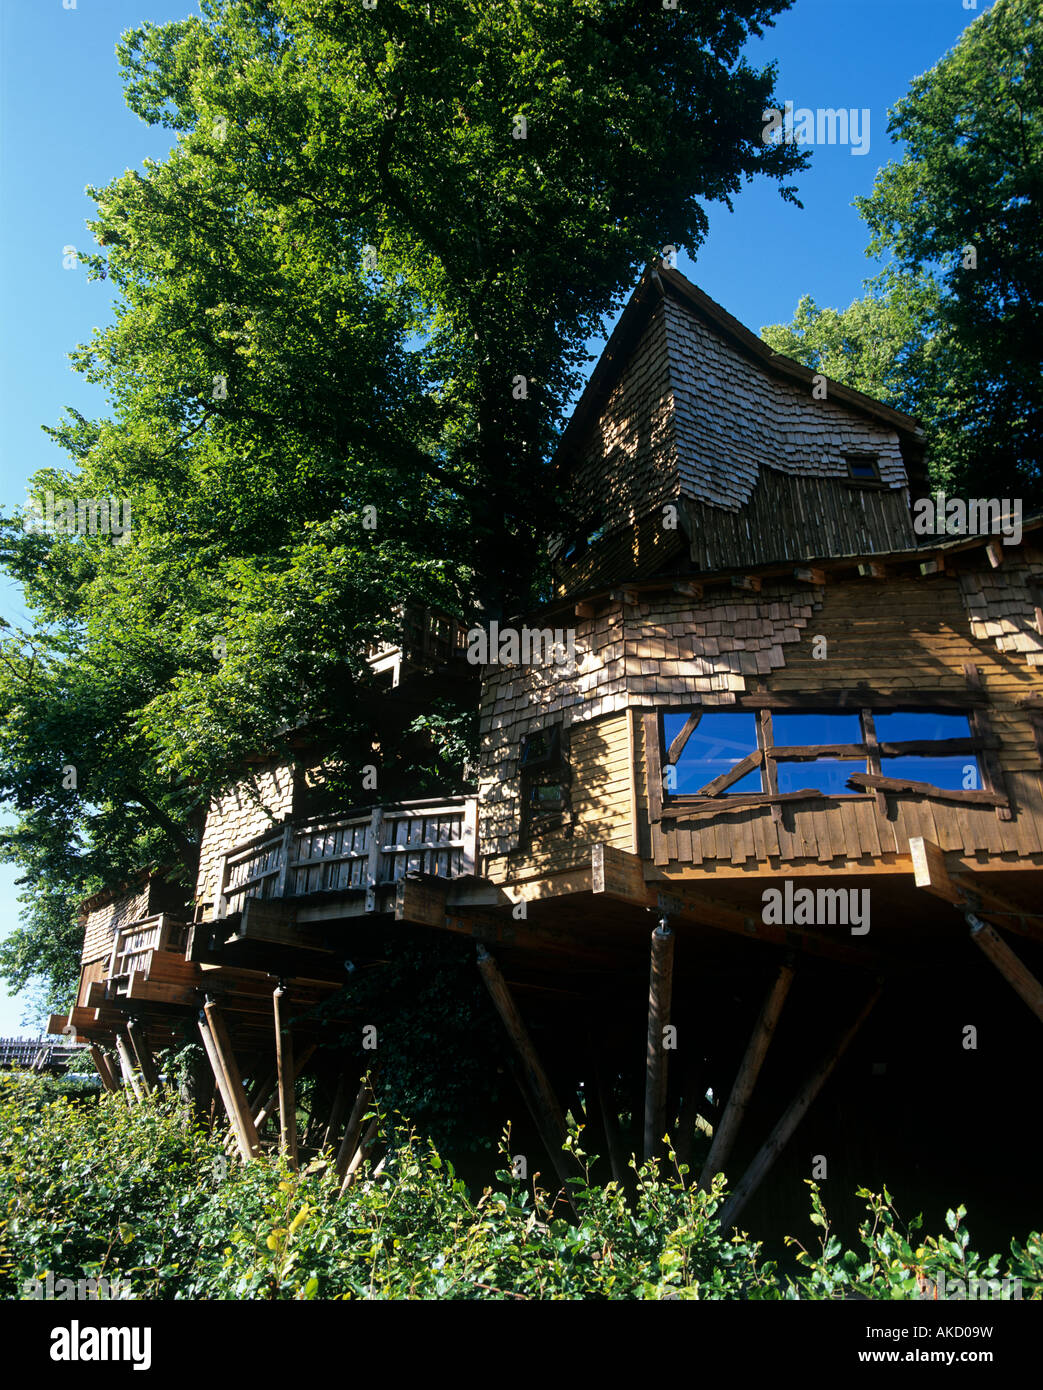 Picture of: The Worlds Largest Tree House At Alnwick Gardens In Northumberland Stock Photo Alamy